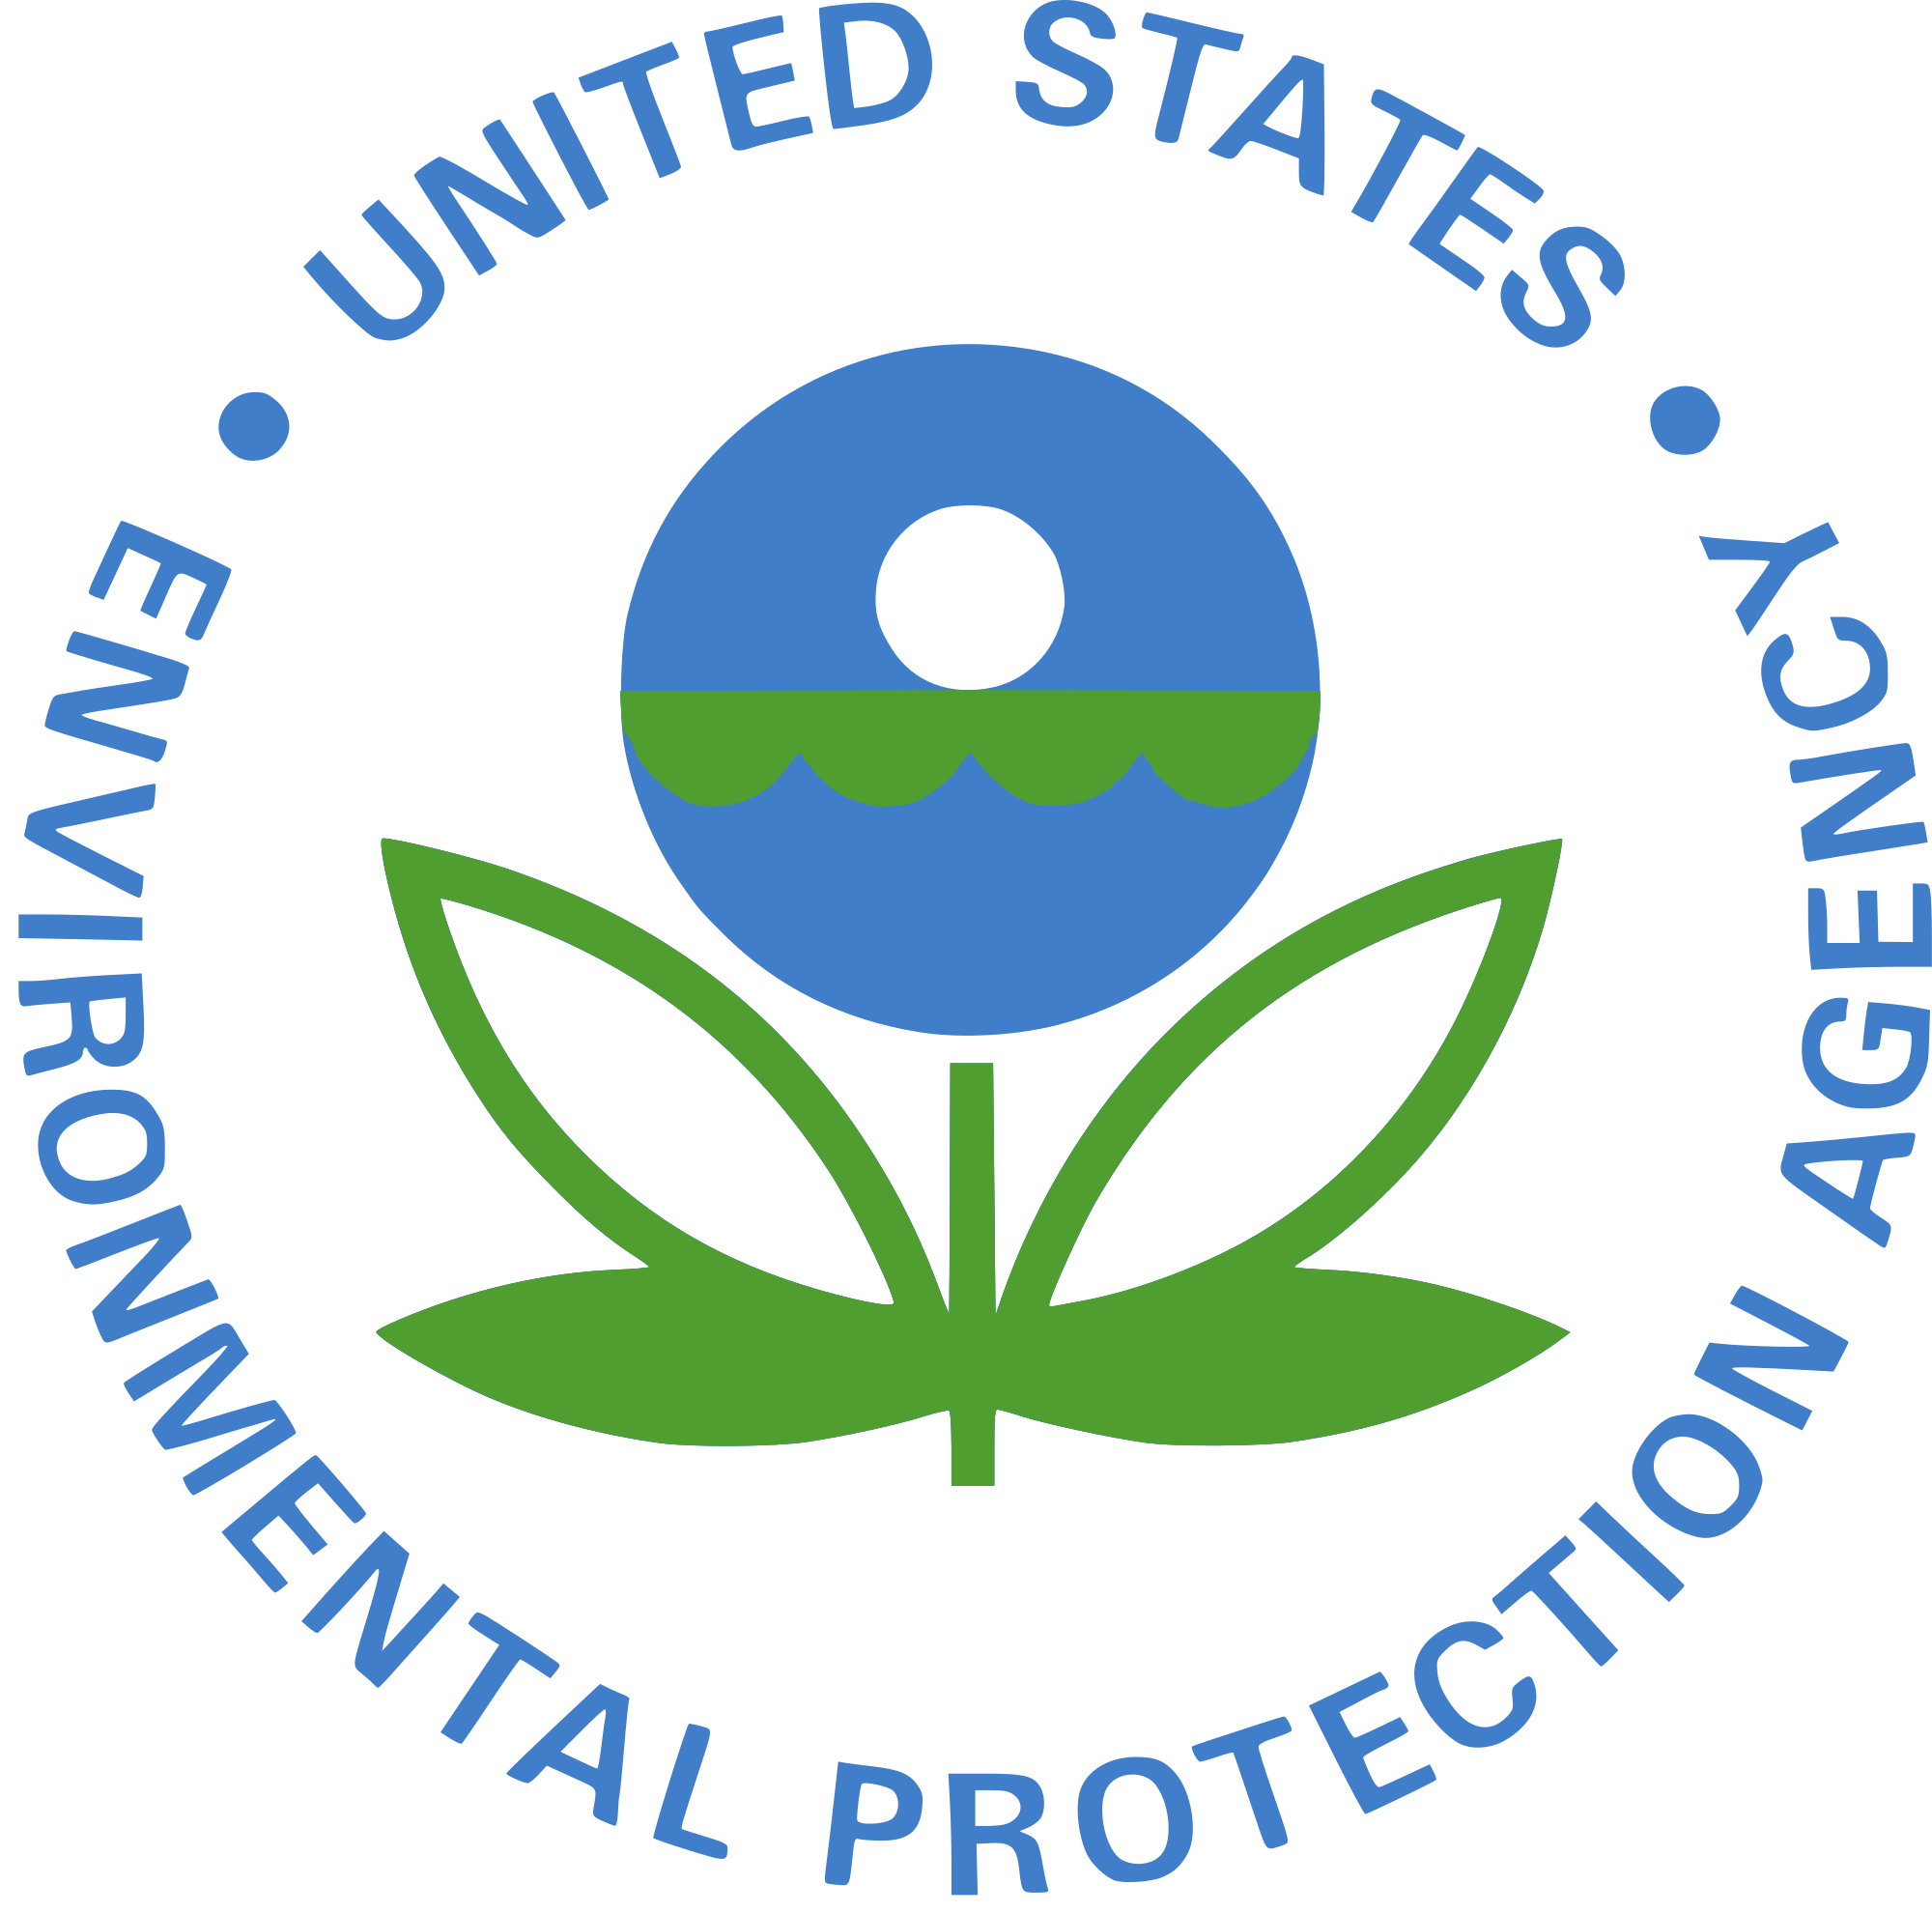 Environment clipart environmental protection. The story behind epa